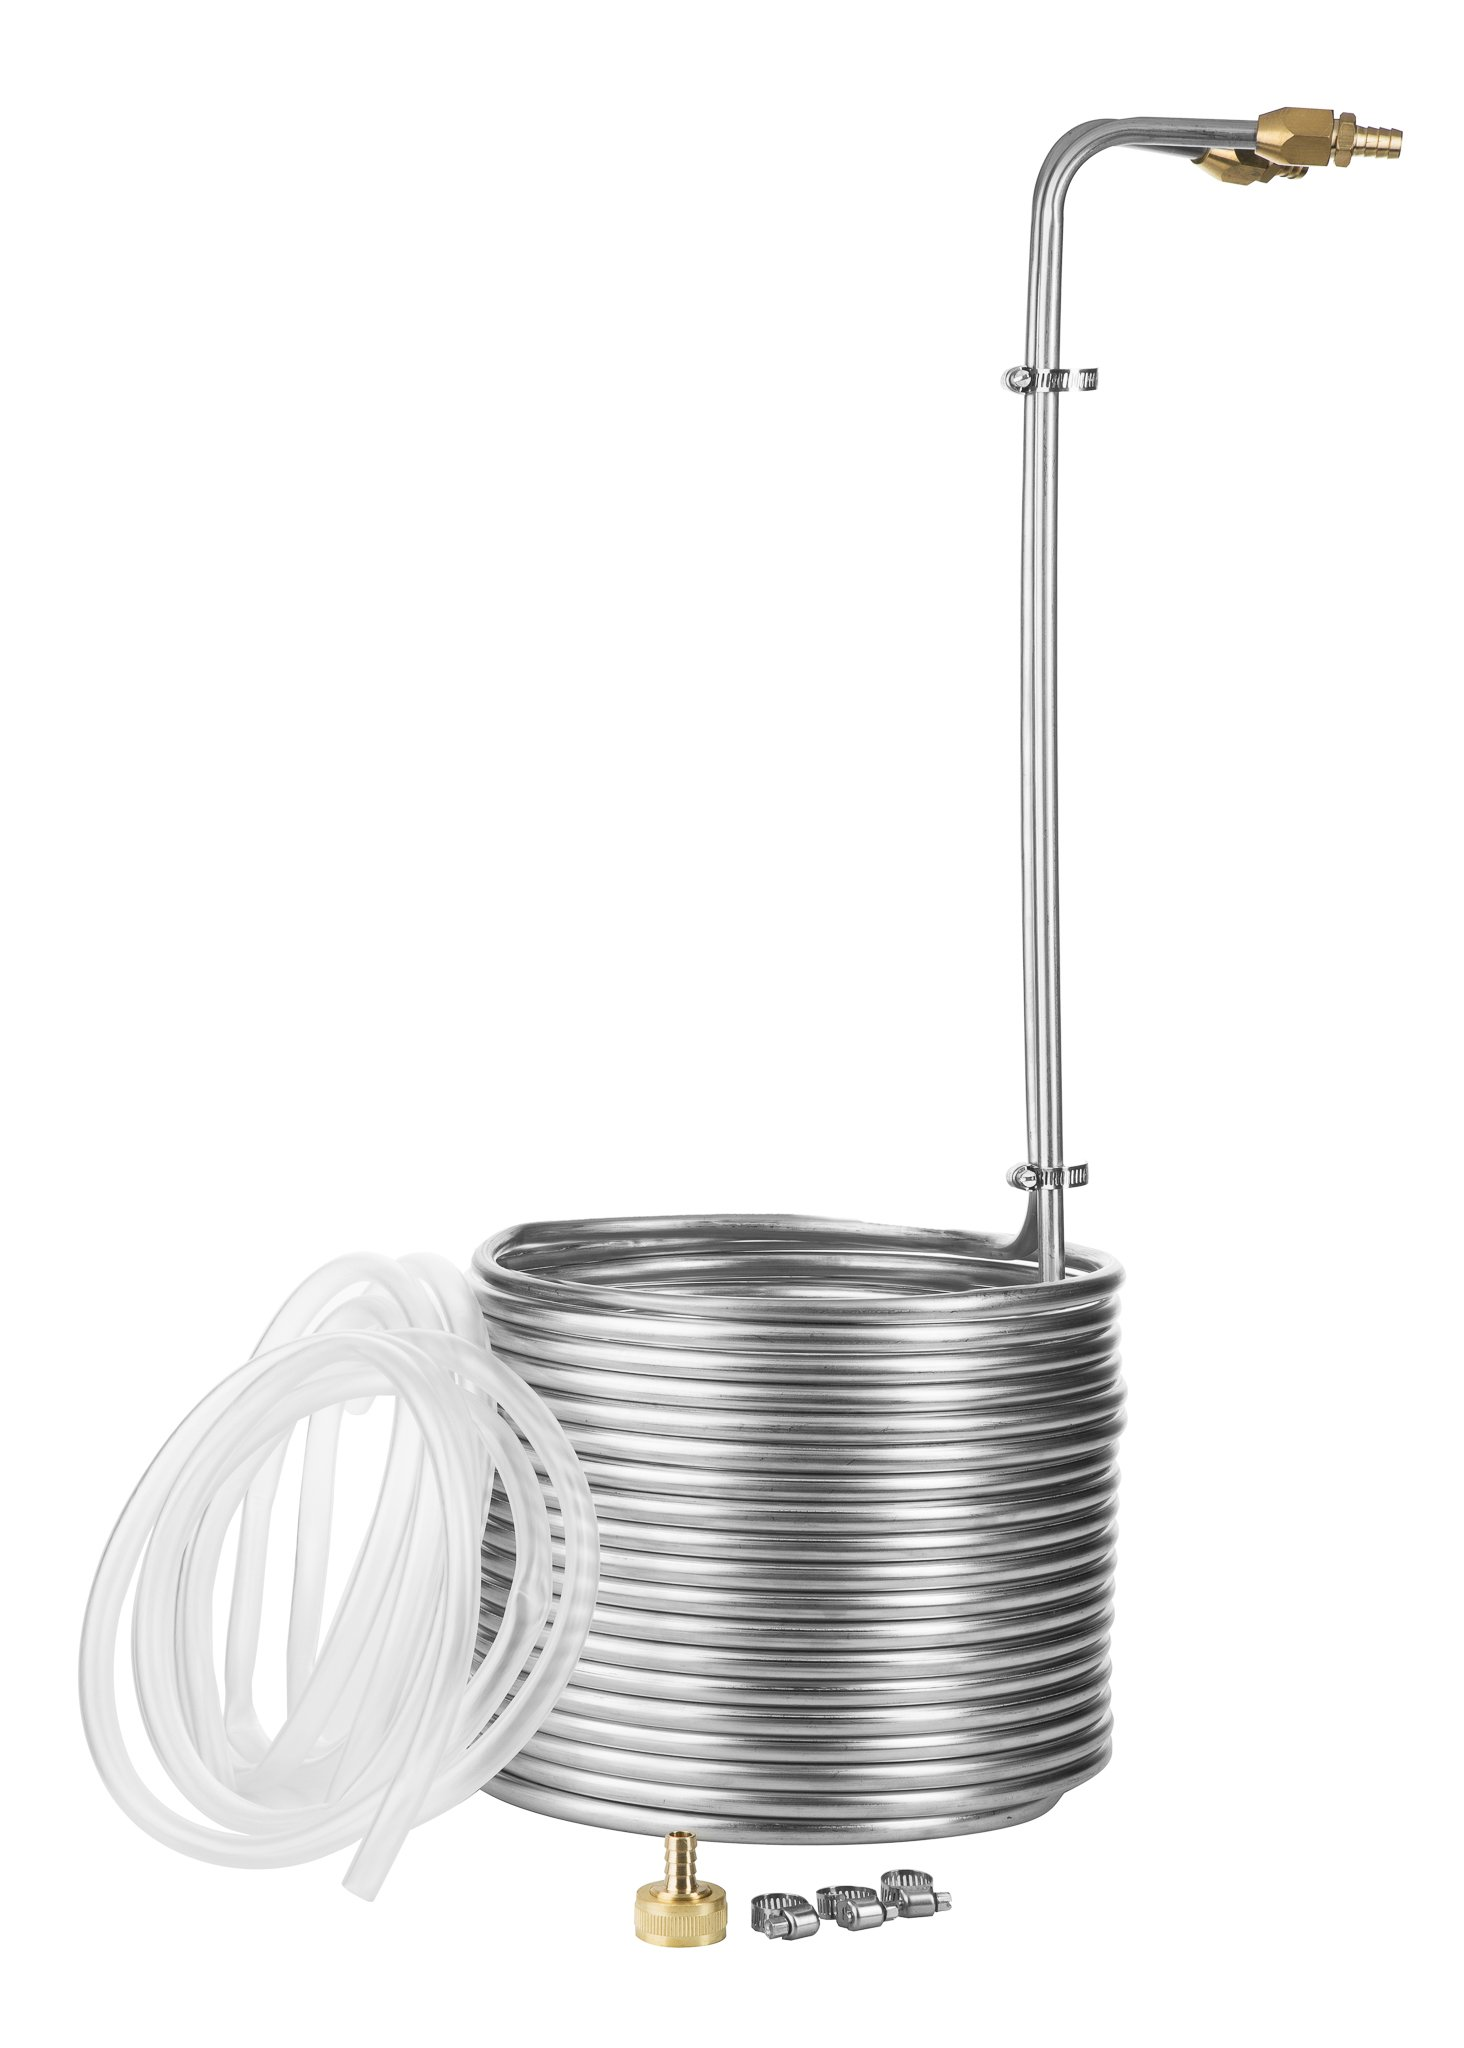 JockeyBox.com WC-50SS38 50 Foot Stainless Steel Immersion Wort Chiller with No-Leak Fittings and Accessories, 50',